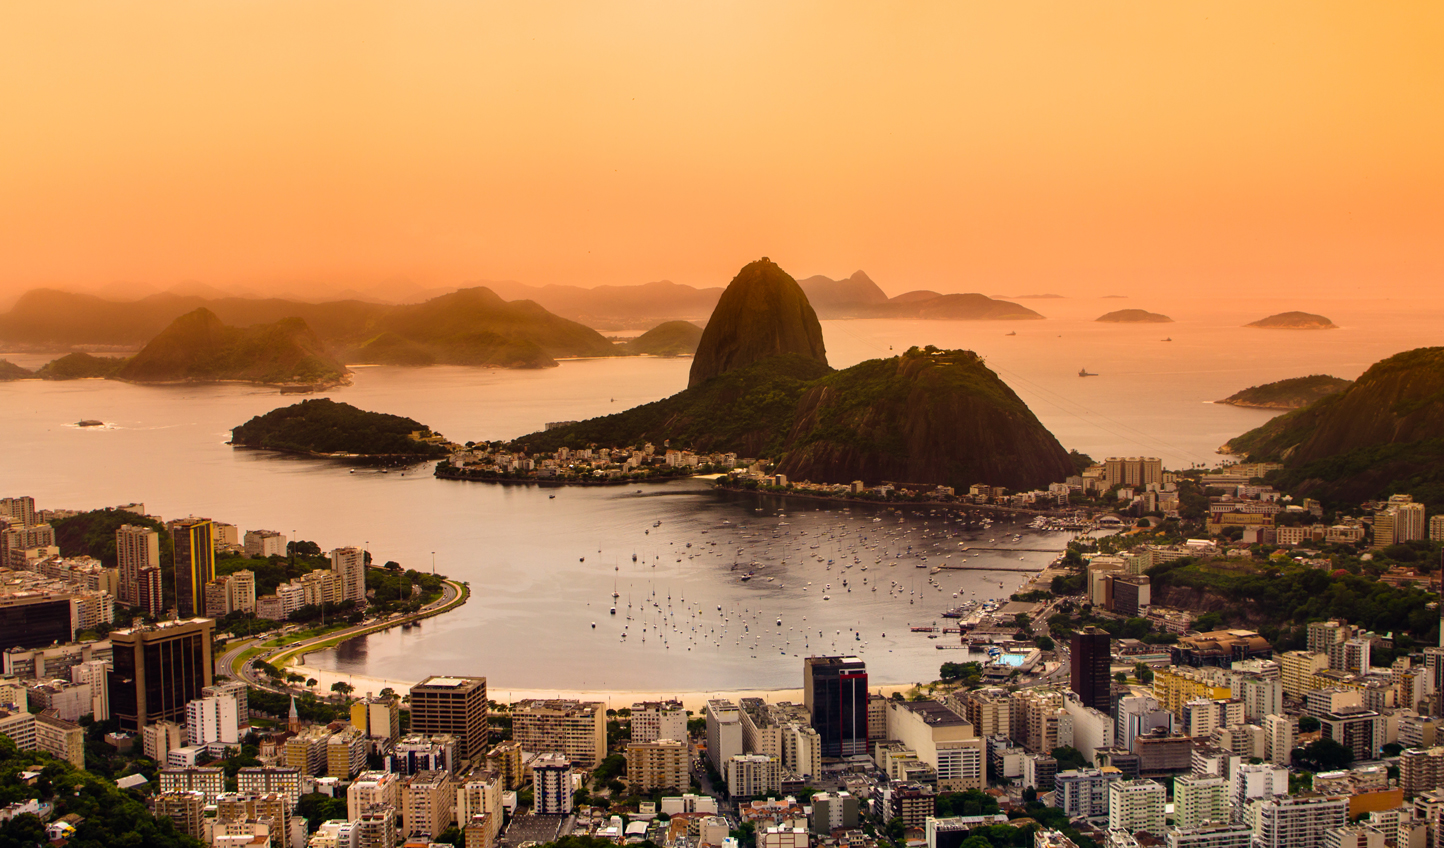 Watch the sunset over Rio